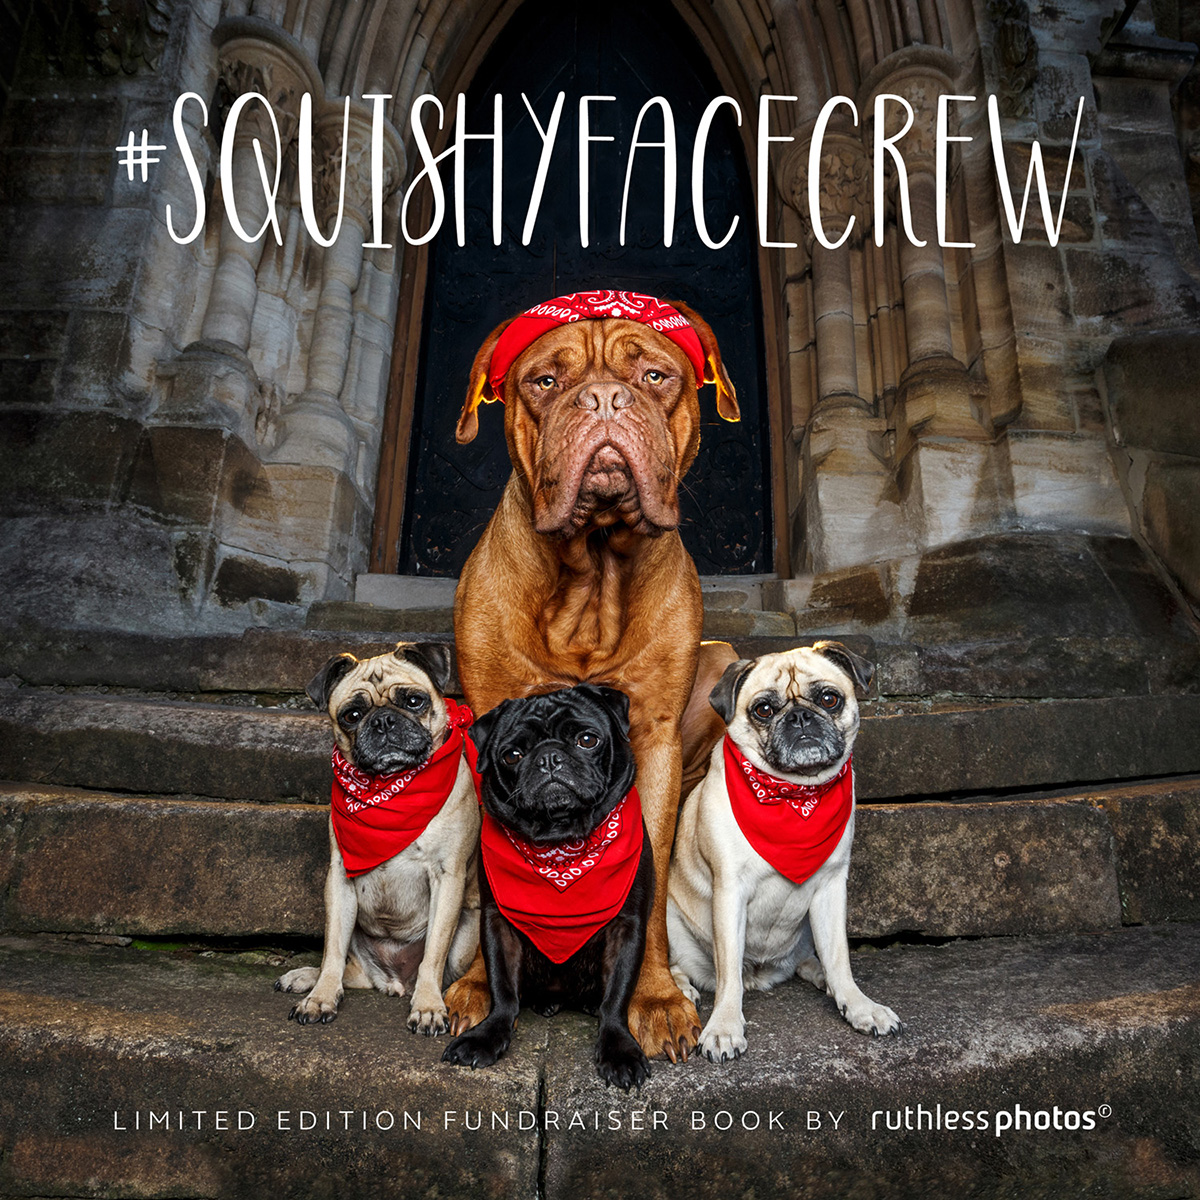 Mastiff and three Pugs sitting for the book cover of SquishyFaceCrew Book by Ruthless Photos